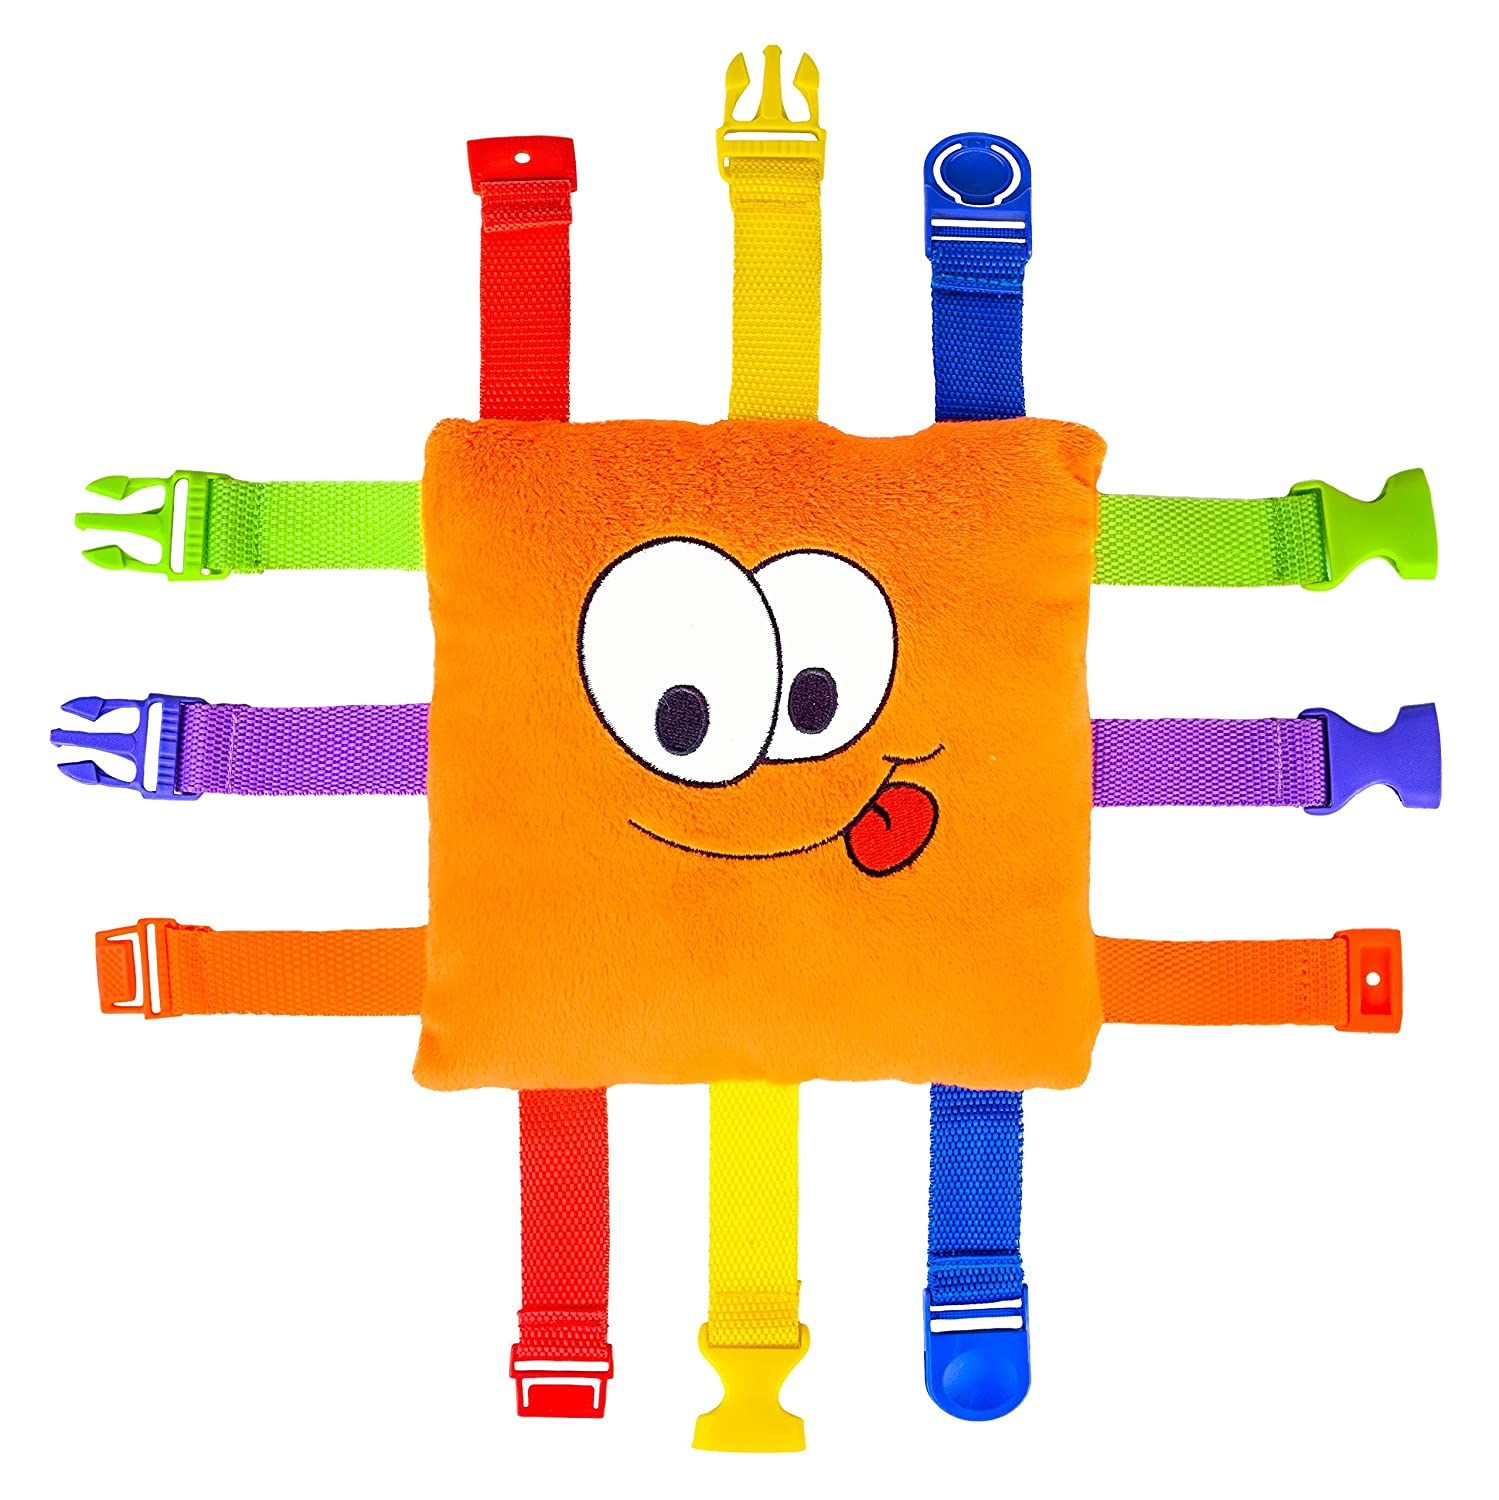 BUCKLE TOY Bizzy - Toddler Early Learning Basic Life Skills Children's Plush Travel Activity Buckle Toy Inc